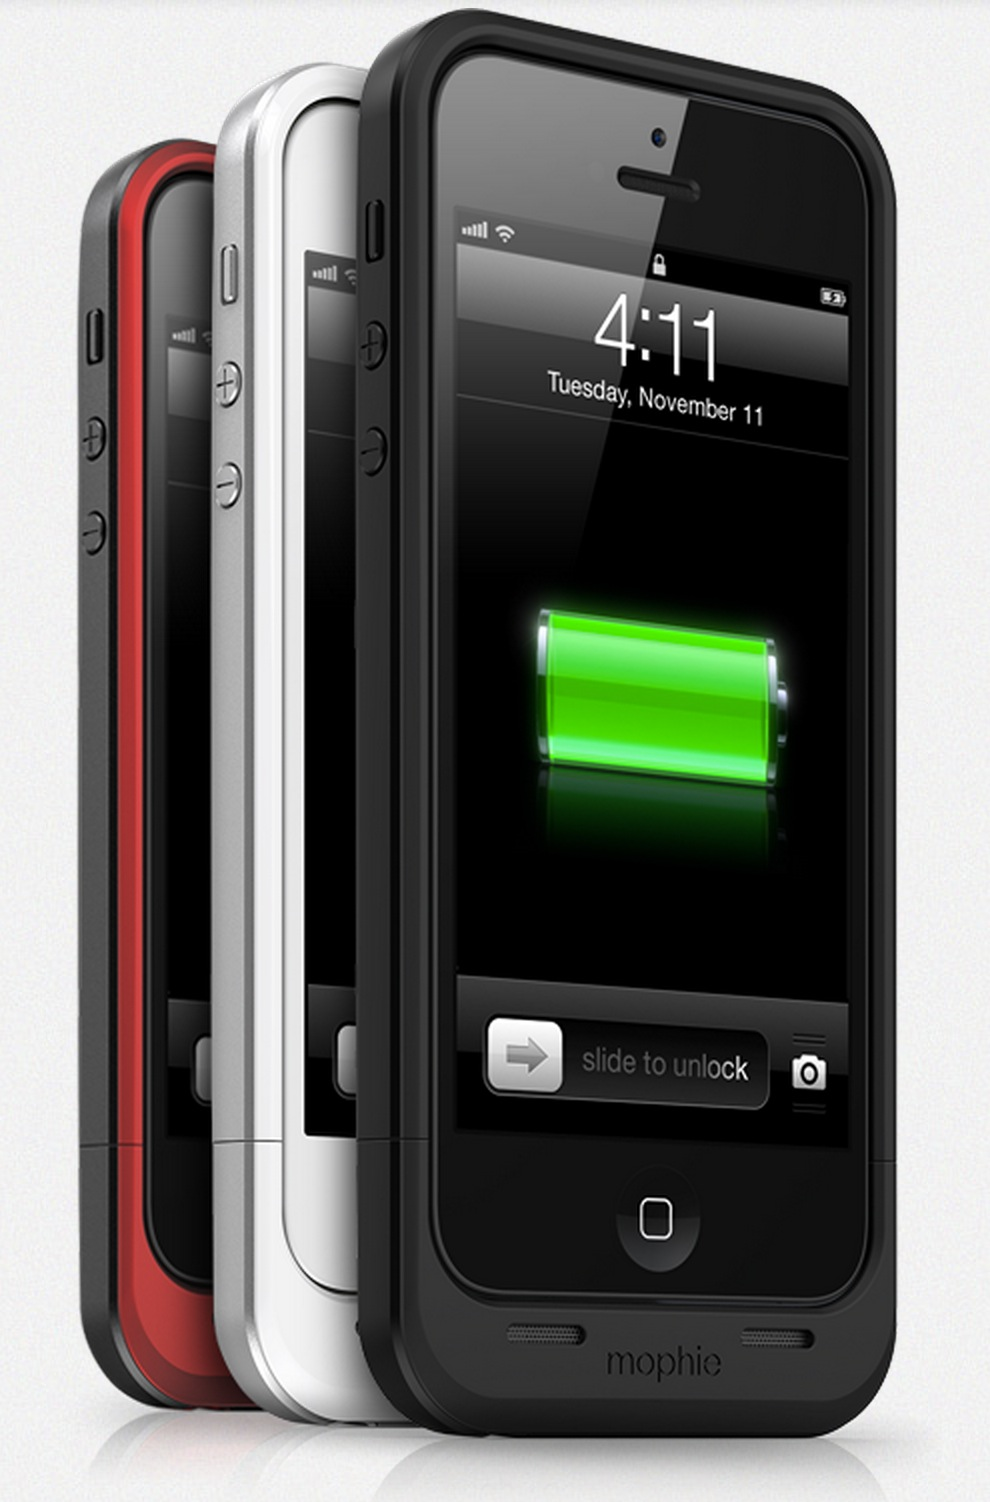 mophie、iPhone 5用バッテリー内蔵ケース「mophie juice pack Air for iPhone 5」発表